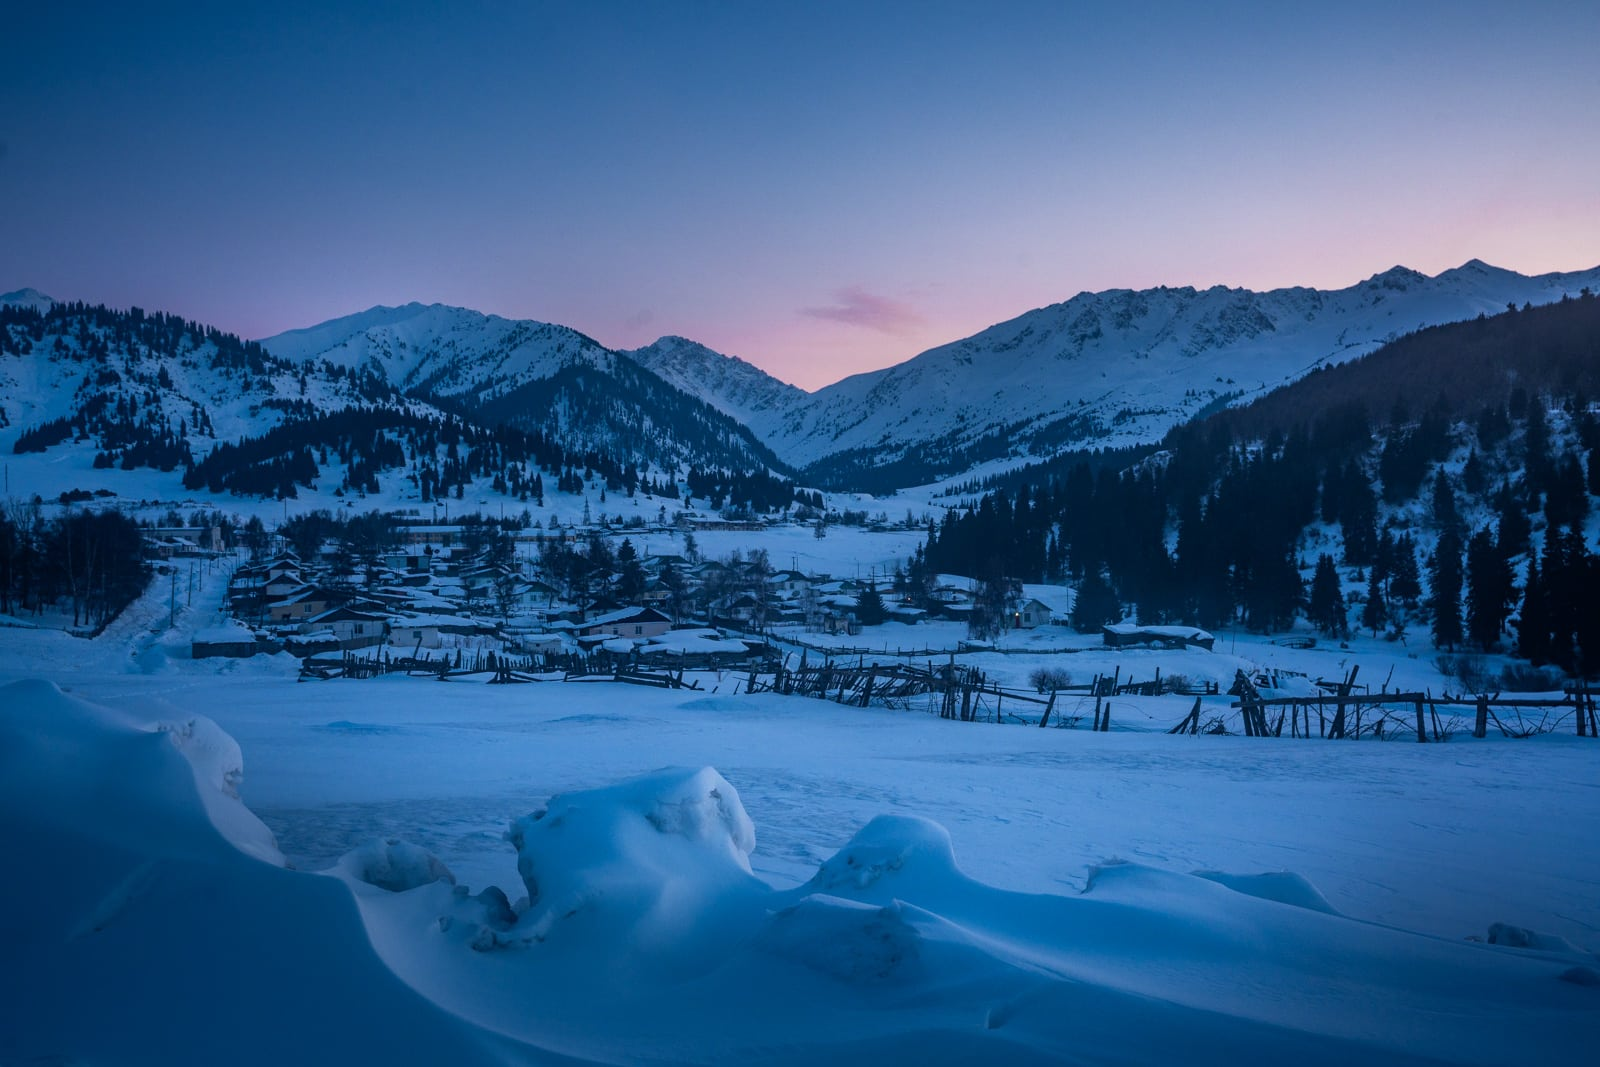 Jyrgalan, Kyrgyzstan at sunset in winter